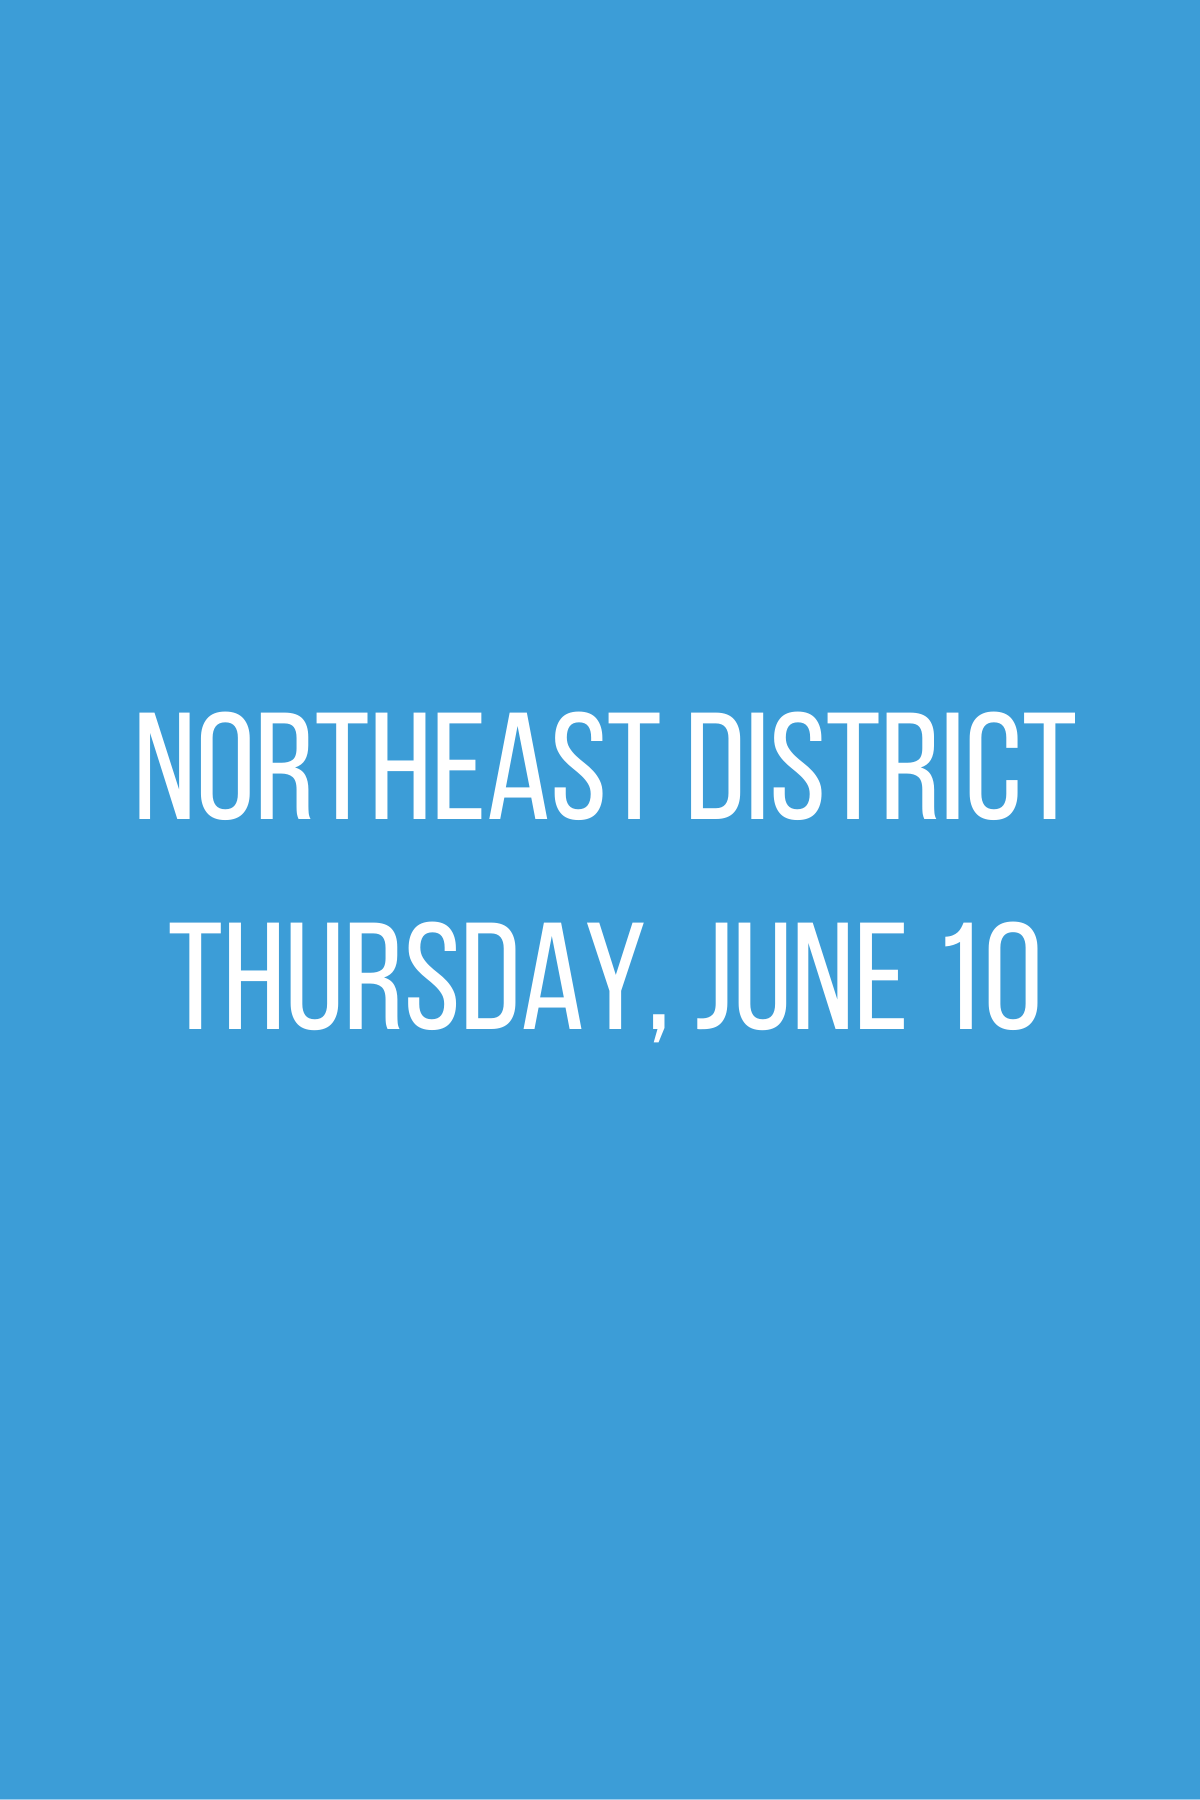 Northeast District Meeting - Thursday, June 10